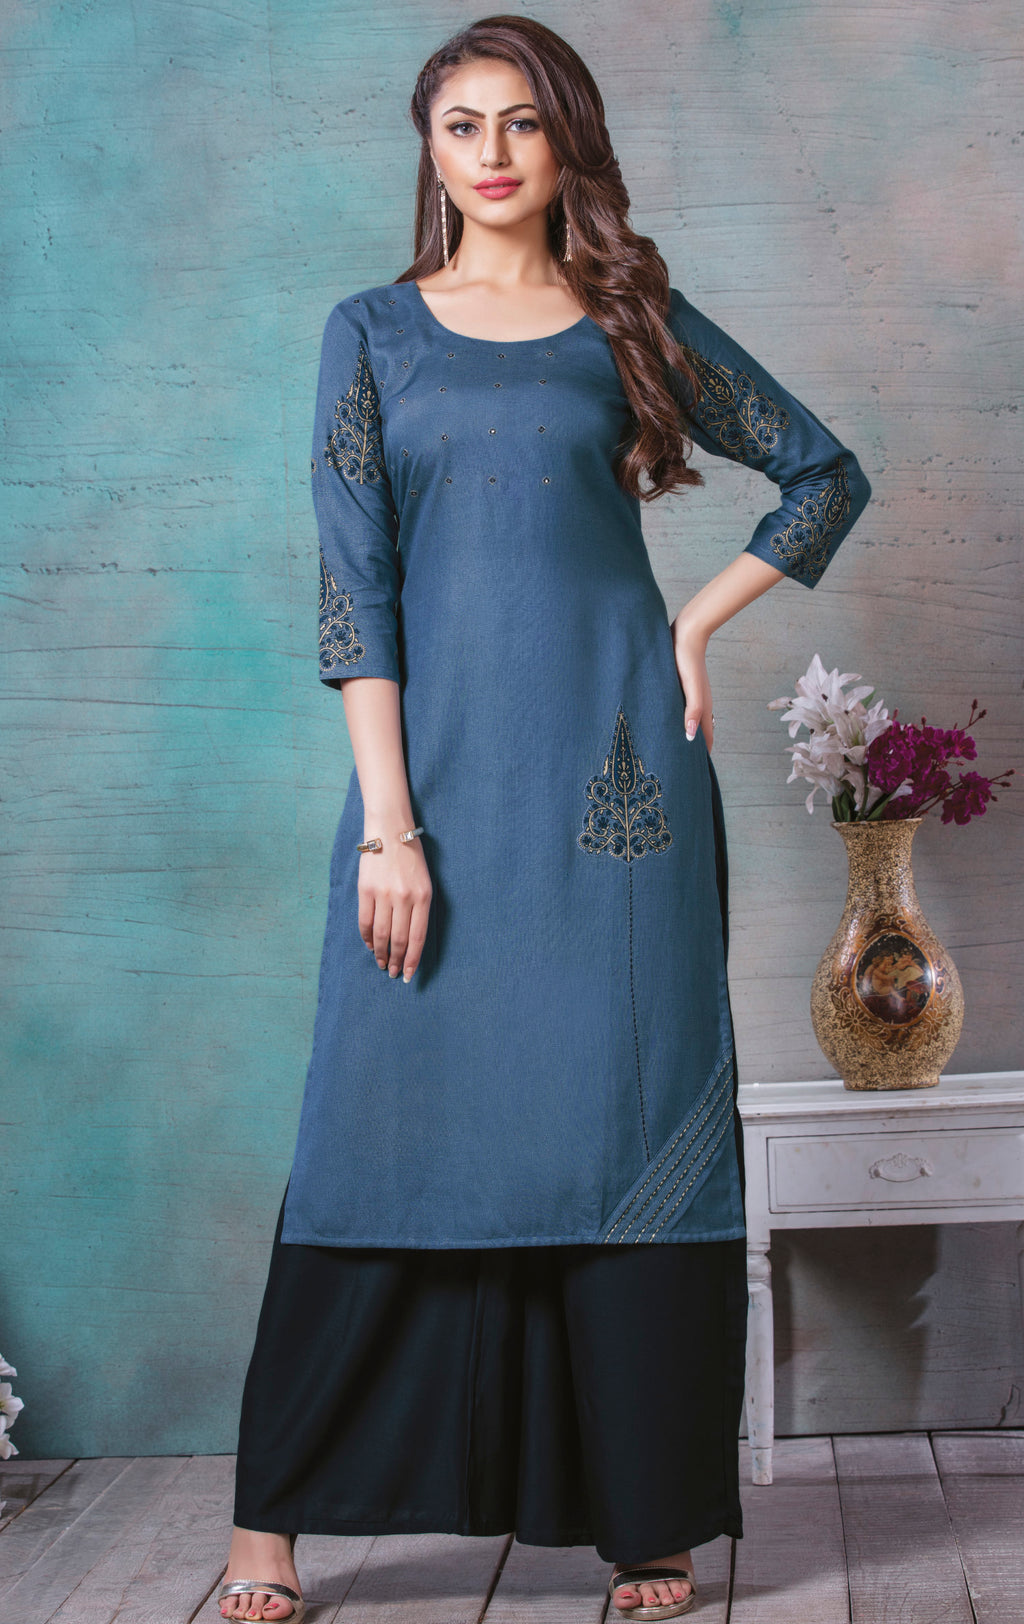 Blue Color Rayon Cotton Splendid Party Wear Kurtis NYF-5442